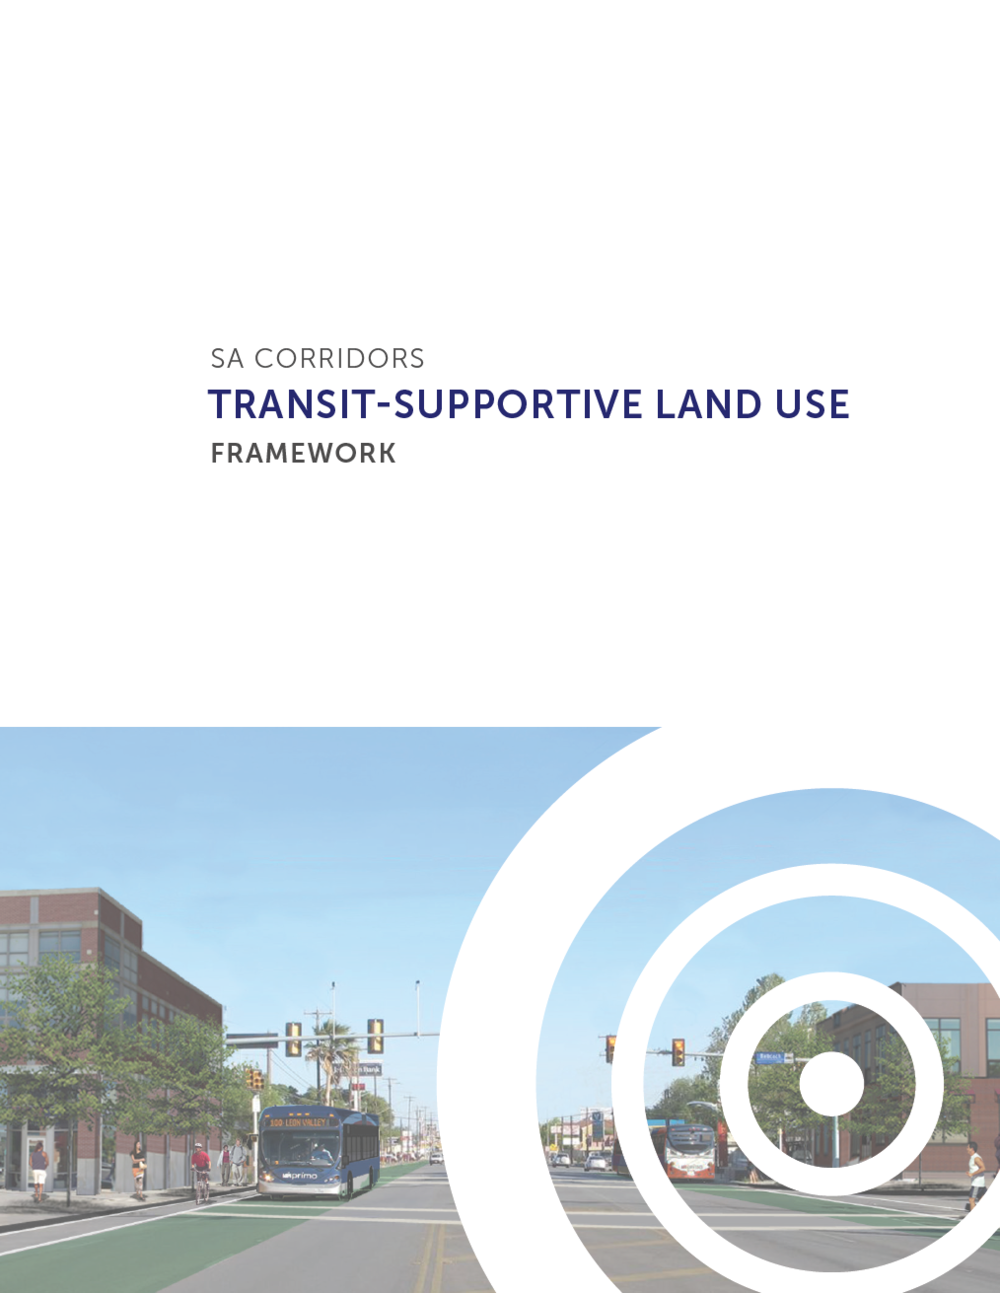 Transit-Supportive Land Use Framework